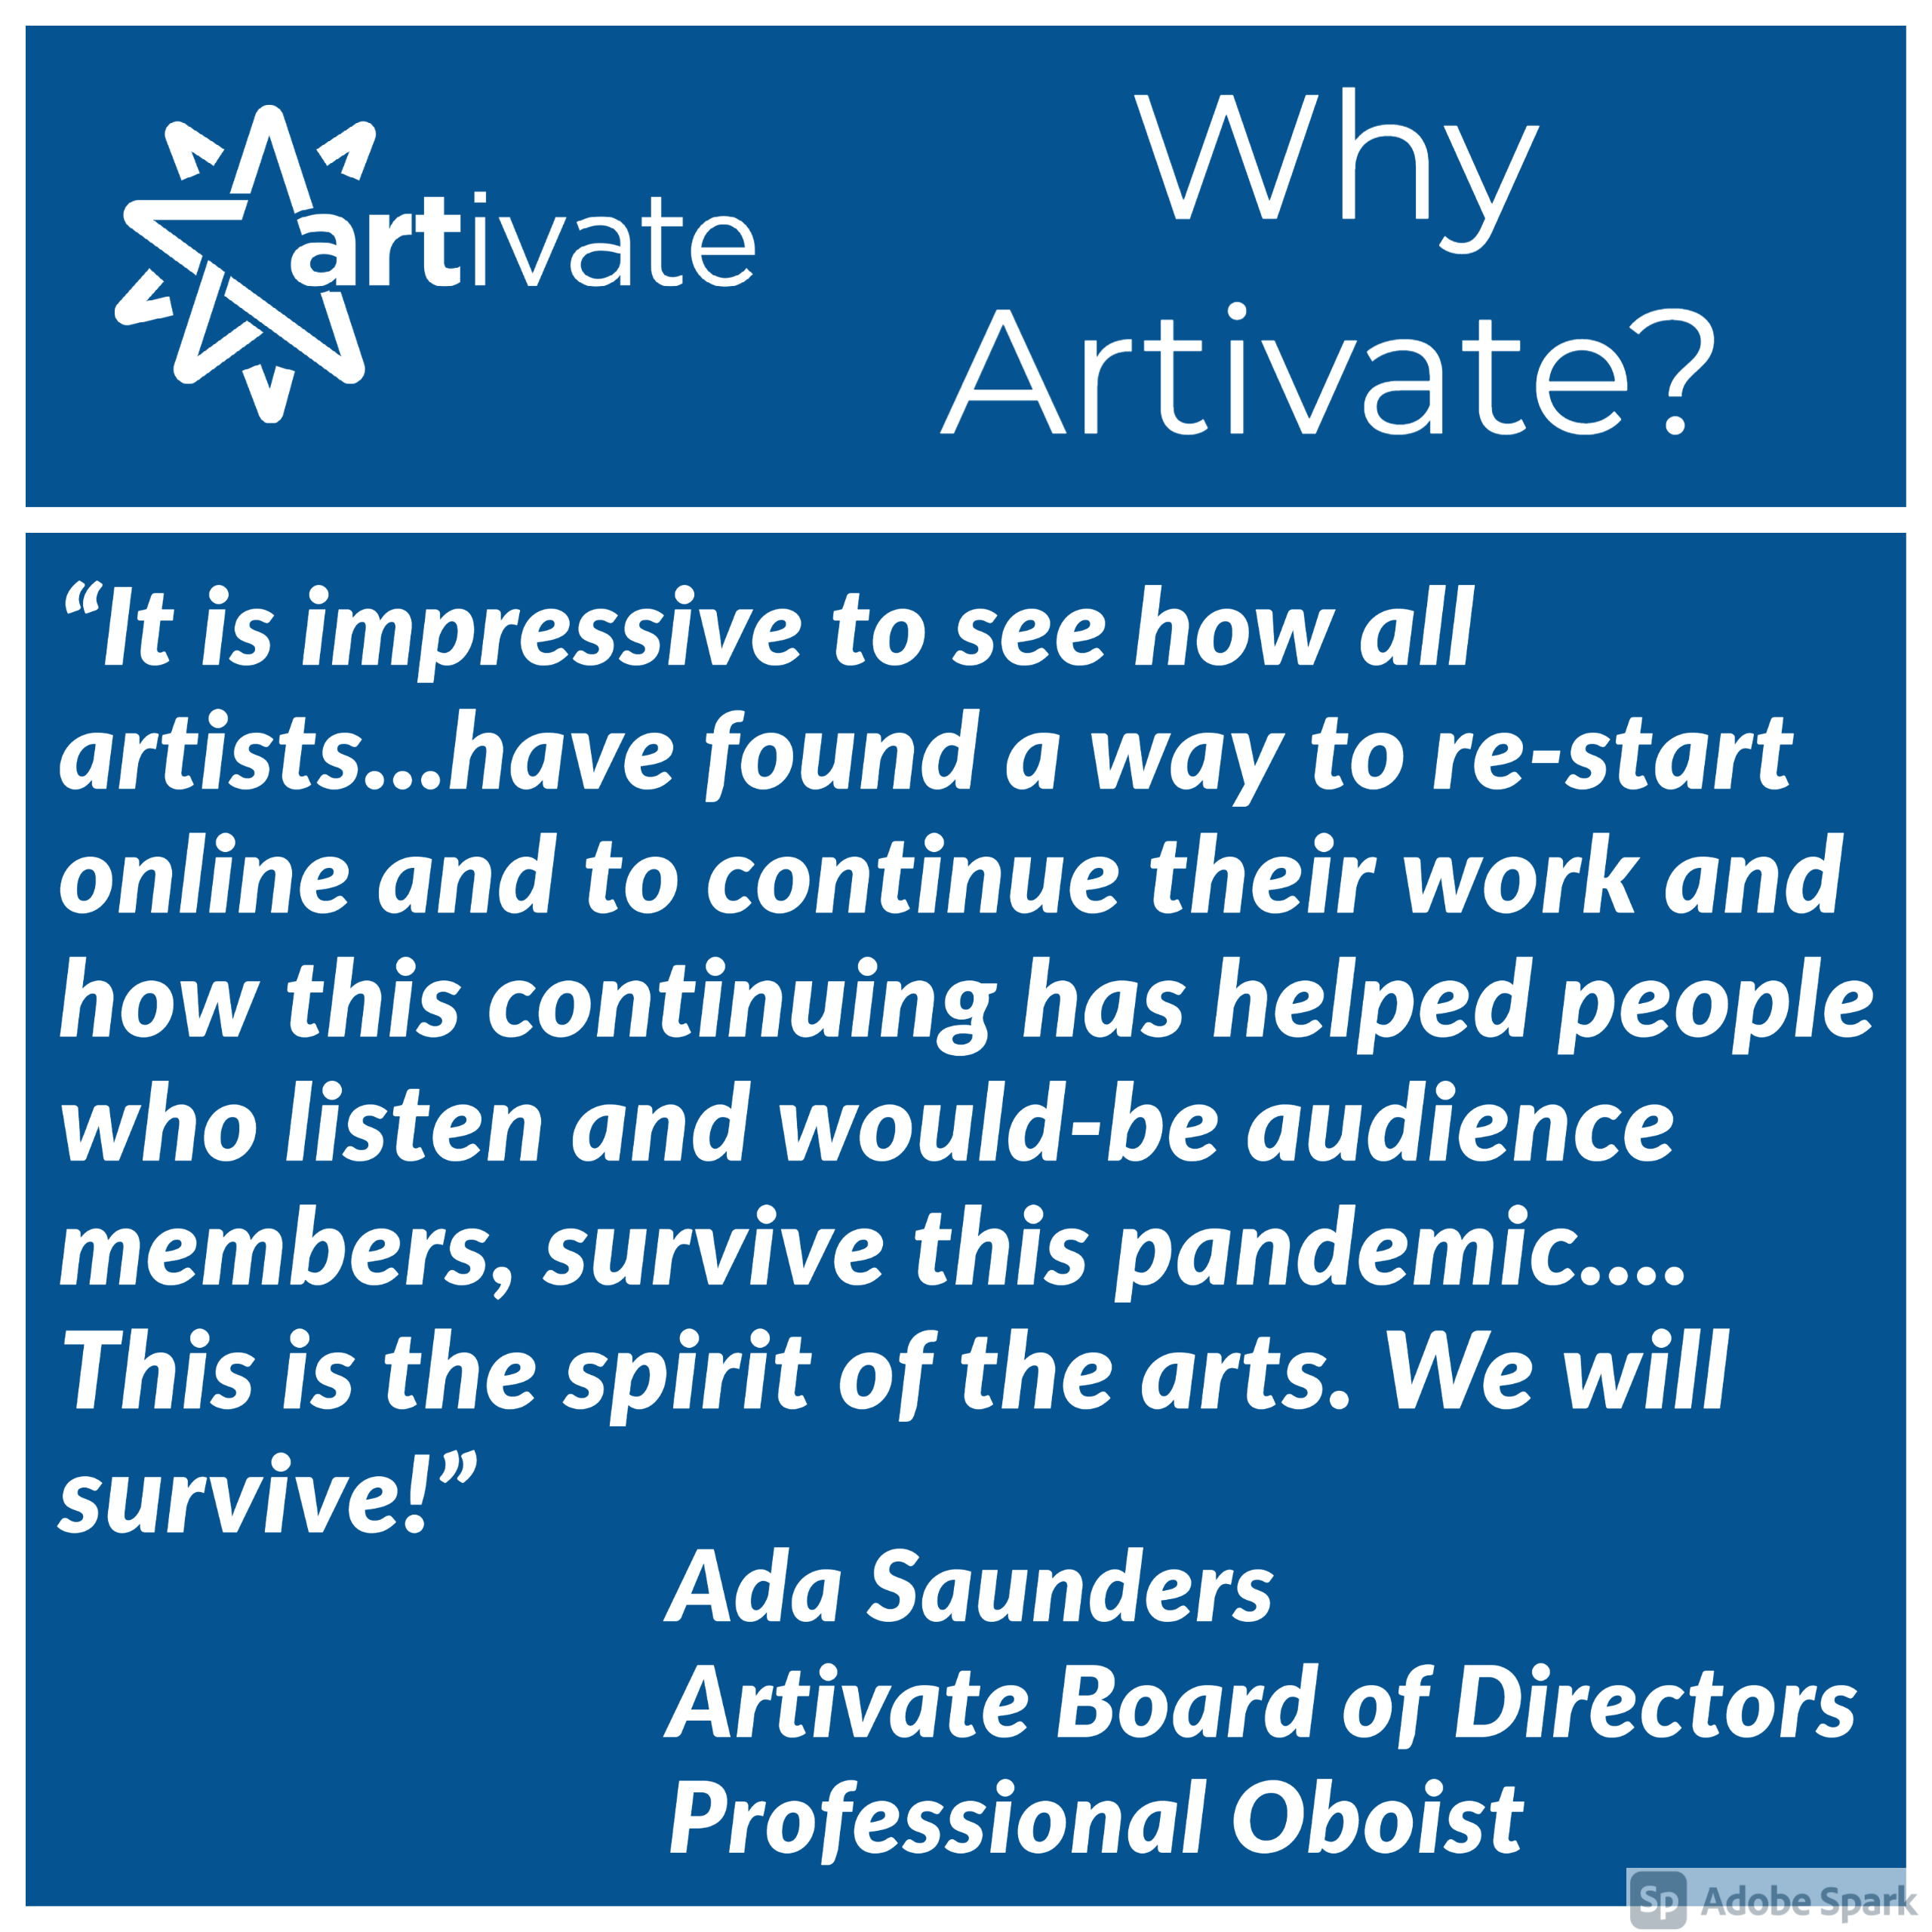 Why Artivate?